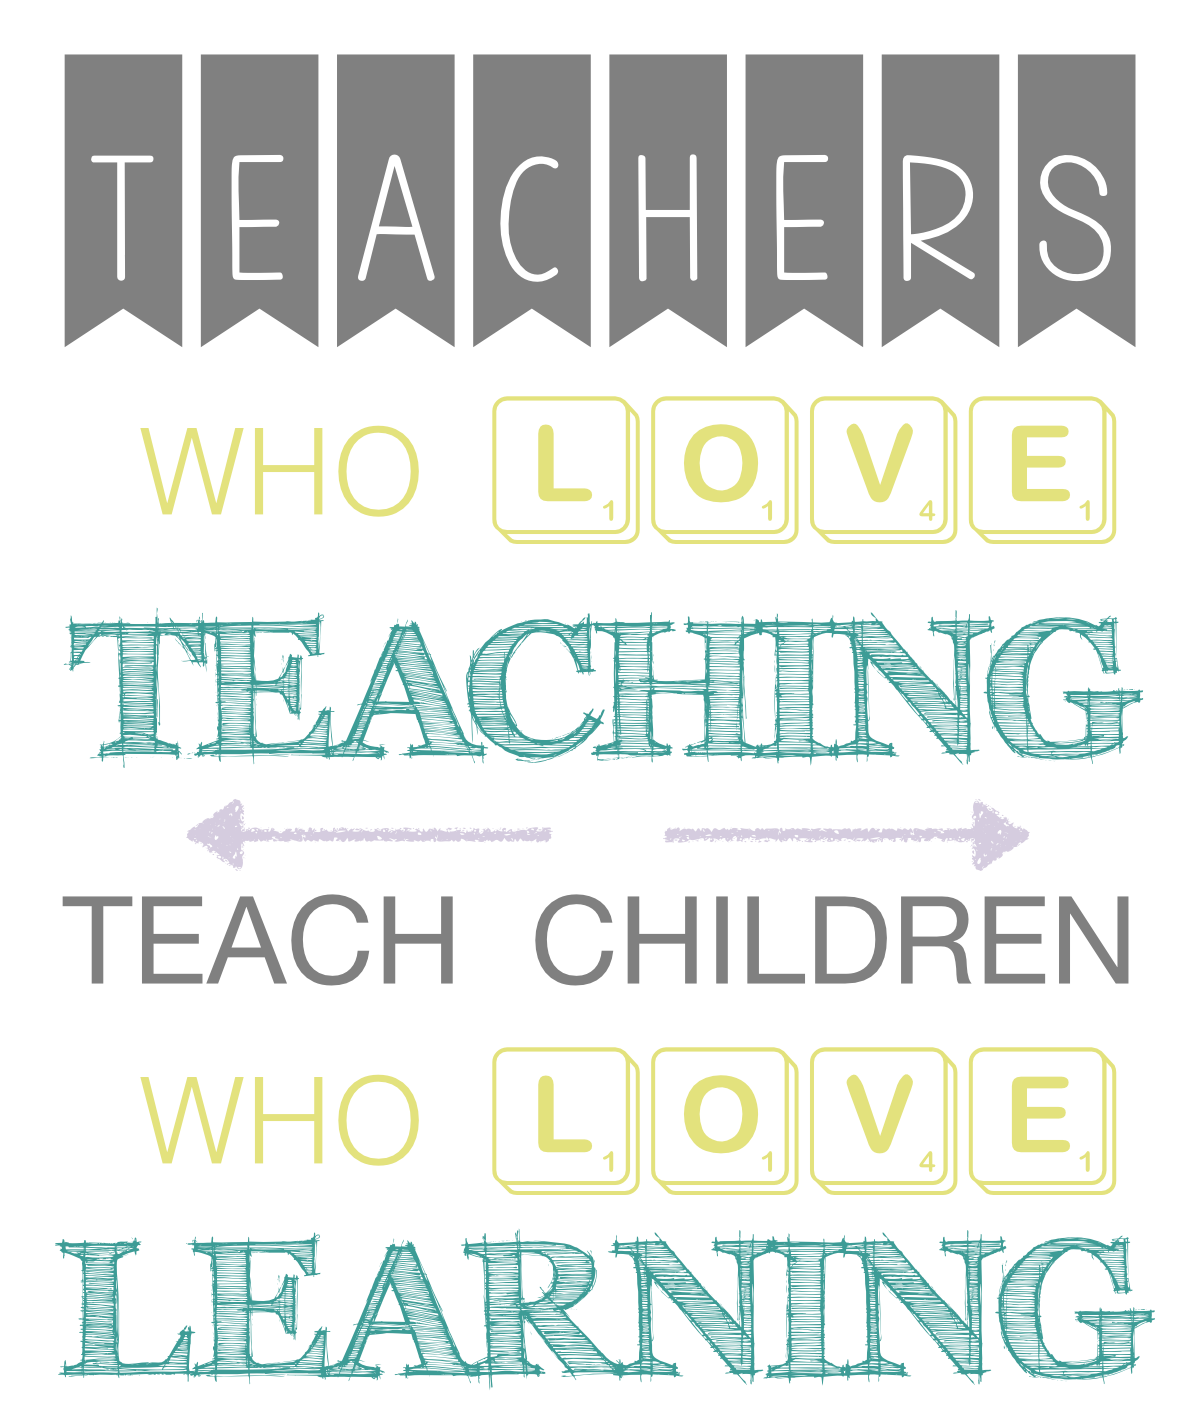 Educational Quotes For Teachers Magnificent Inspiring Teacher Quotes